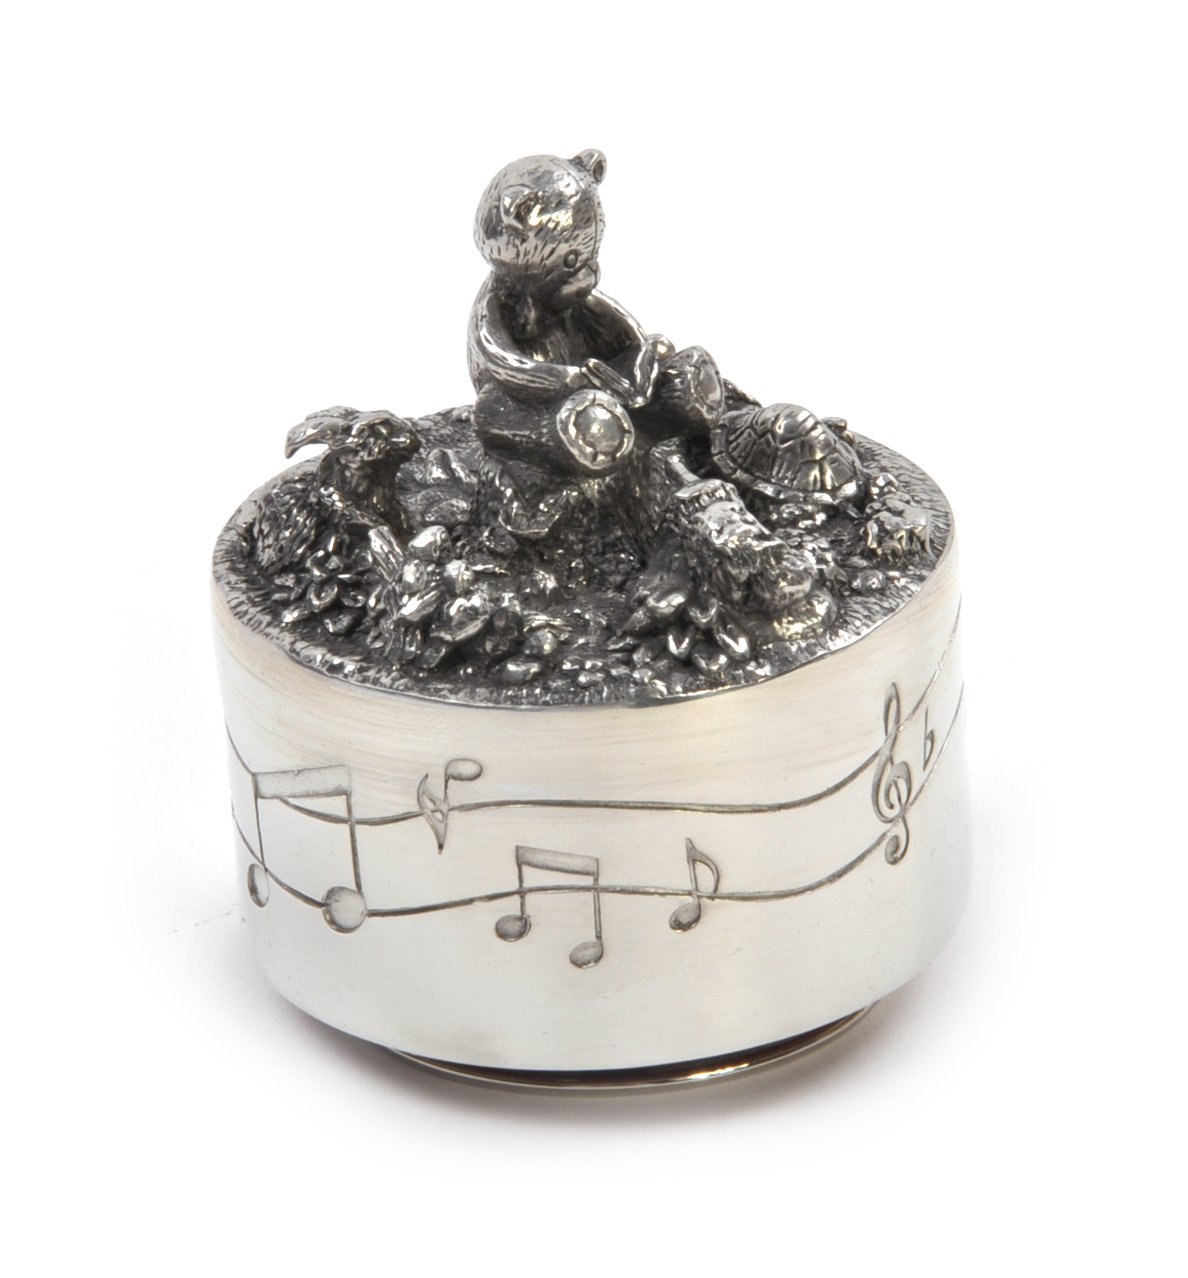 Royal Selangor Hand-Finished Teddy Bears' Picnic Friends Music Carousel in Wooden Gift Box D7CM x H8CM (item) BabyCentre 6432RG